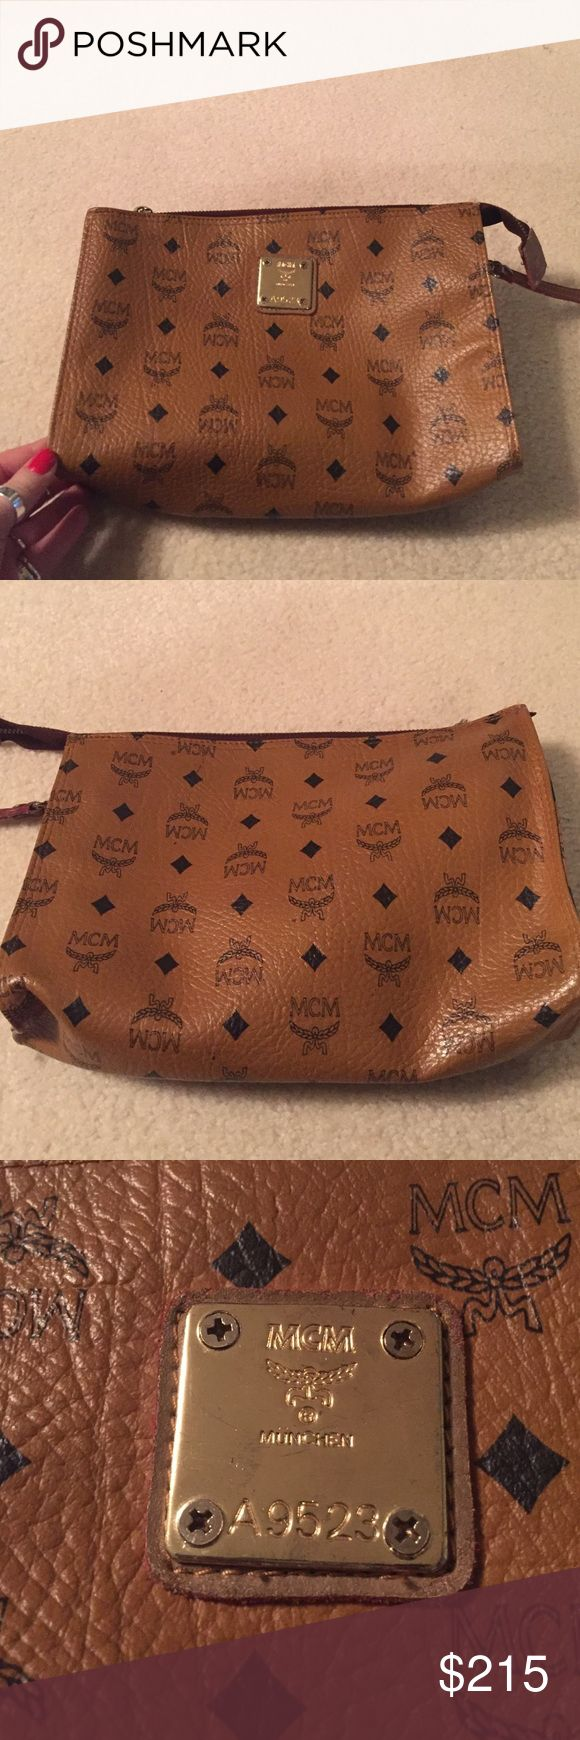 Vintage MCM Bag Vintage bag. Can be used as a cosmetic pouch, clutch or crossbody. I have the long strap but one of the clips broke off. It can be replaced, so I will send it along. Make an offer :) MCM Bags